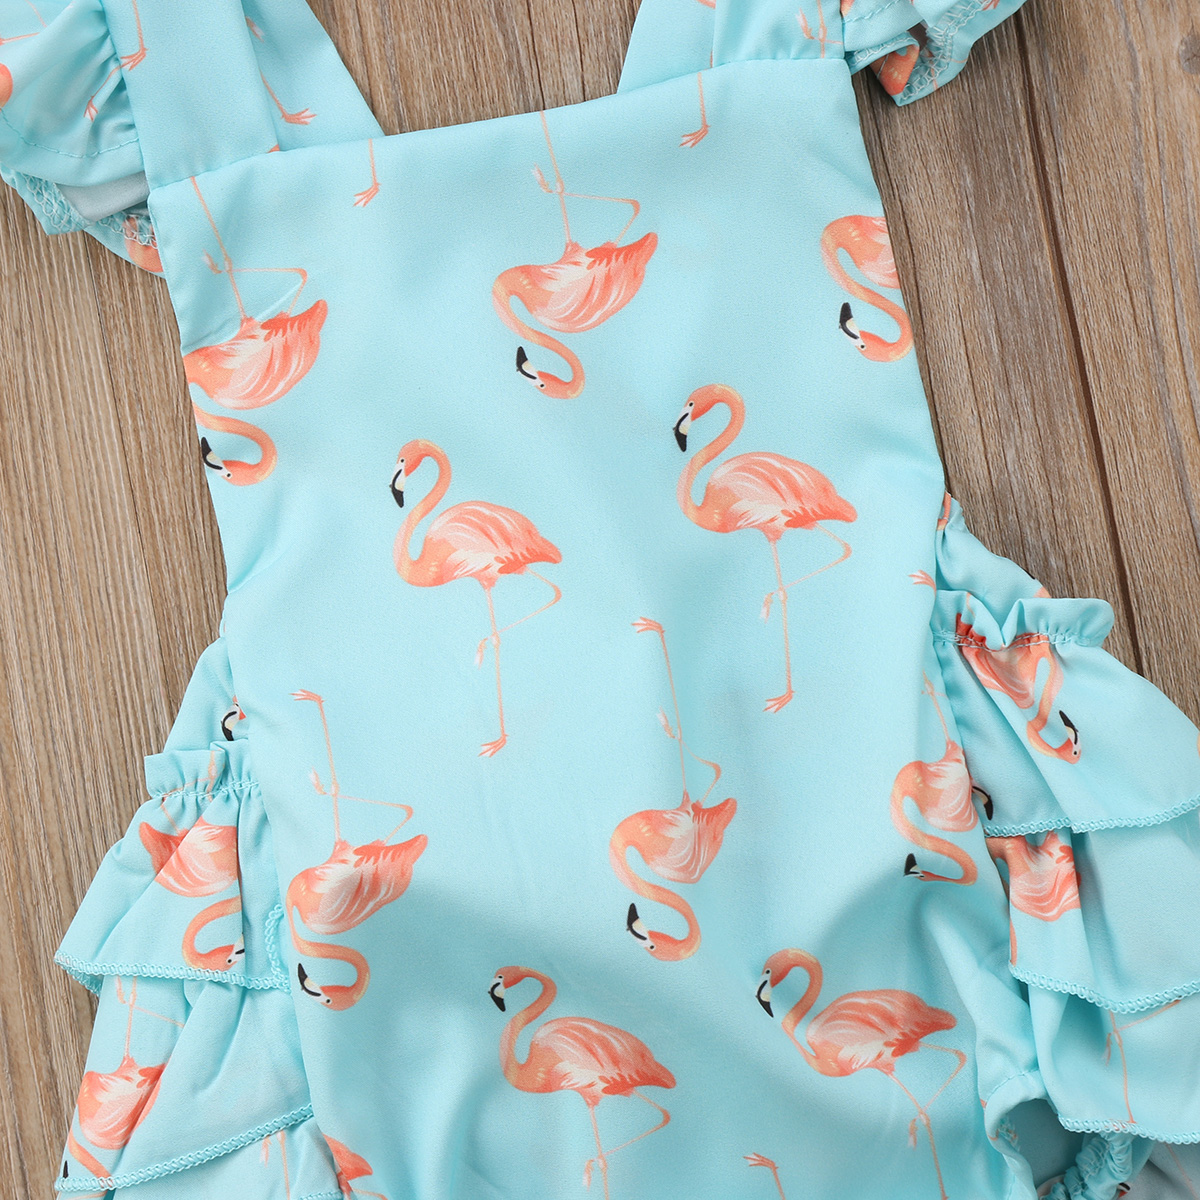 58577e6dc Summer Baby Flamingo Romper Headband Set - Just Pink About It